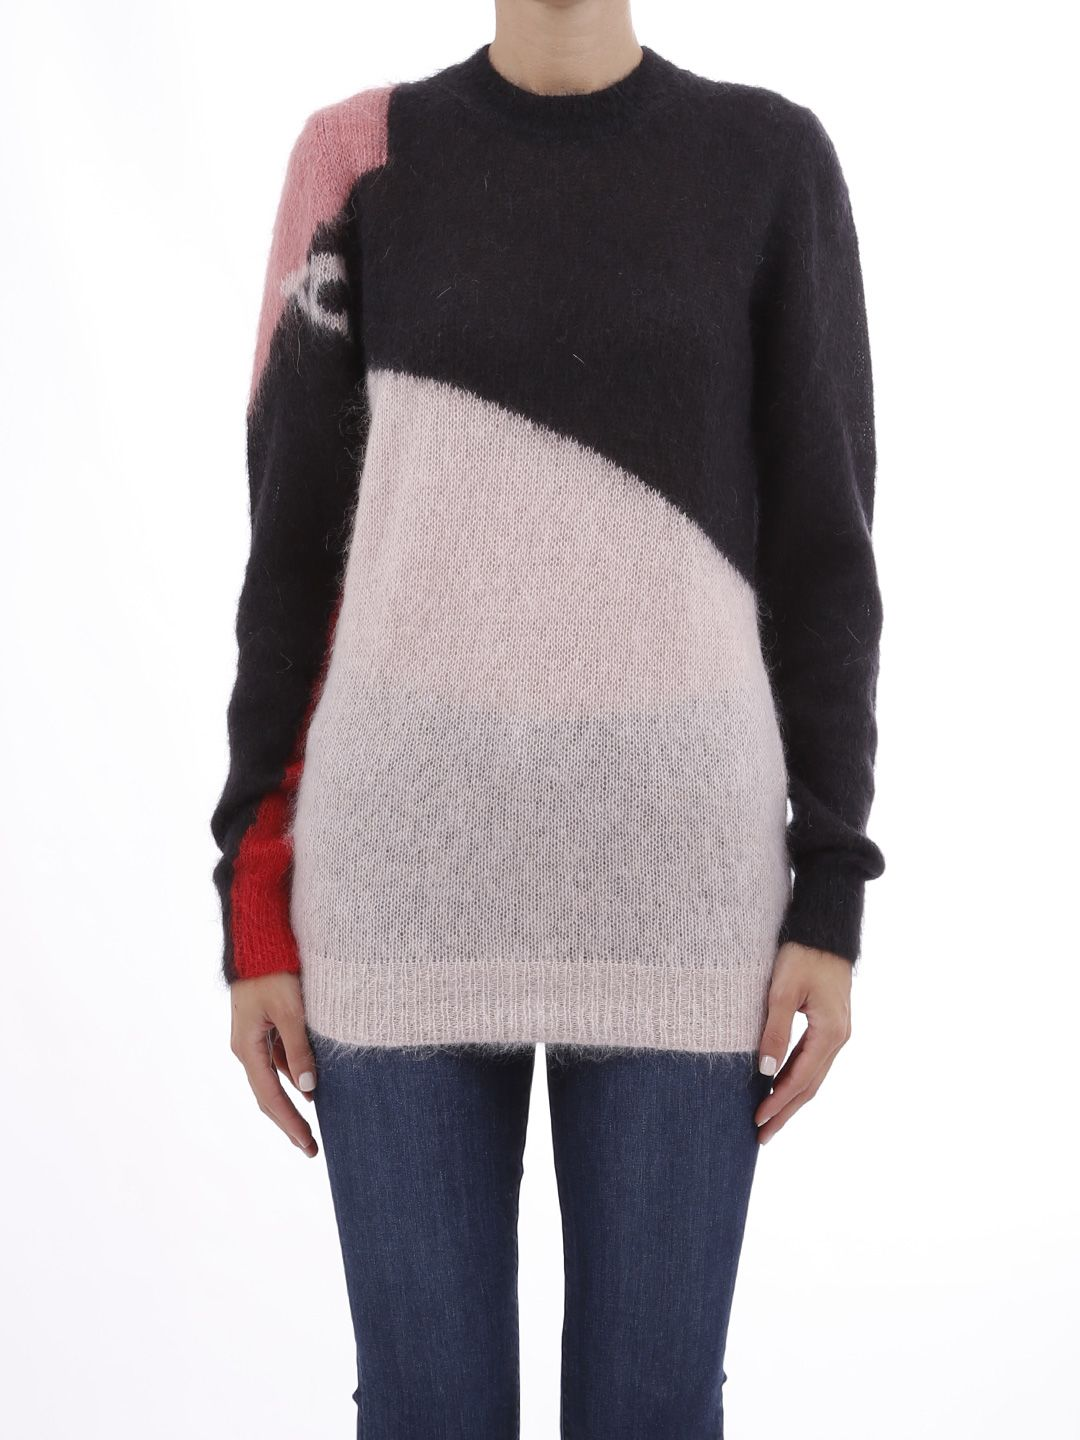 Alyx SWEATER WITH GEOMETRIC COLORS